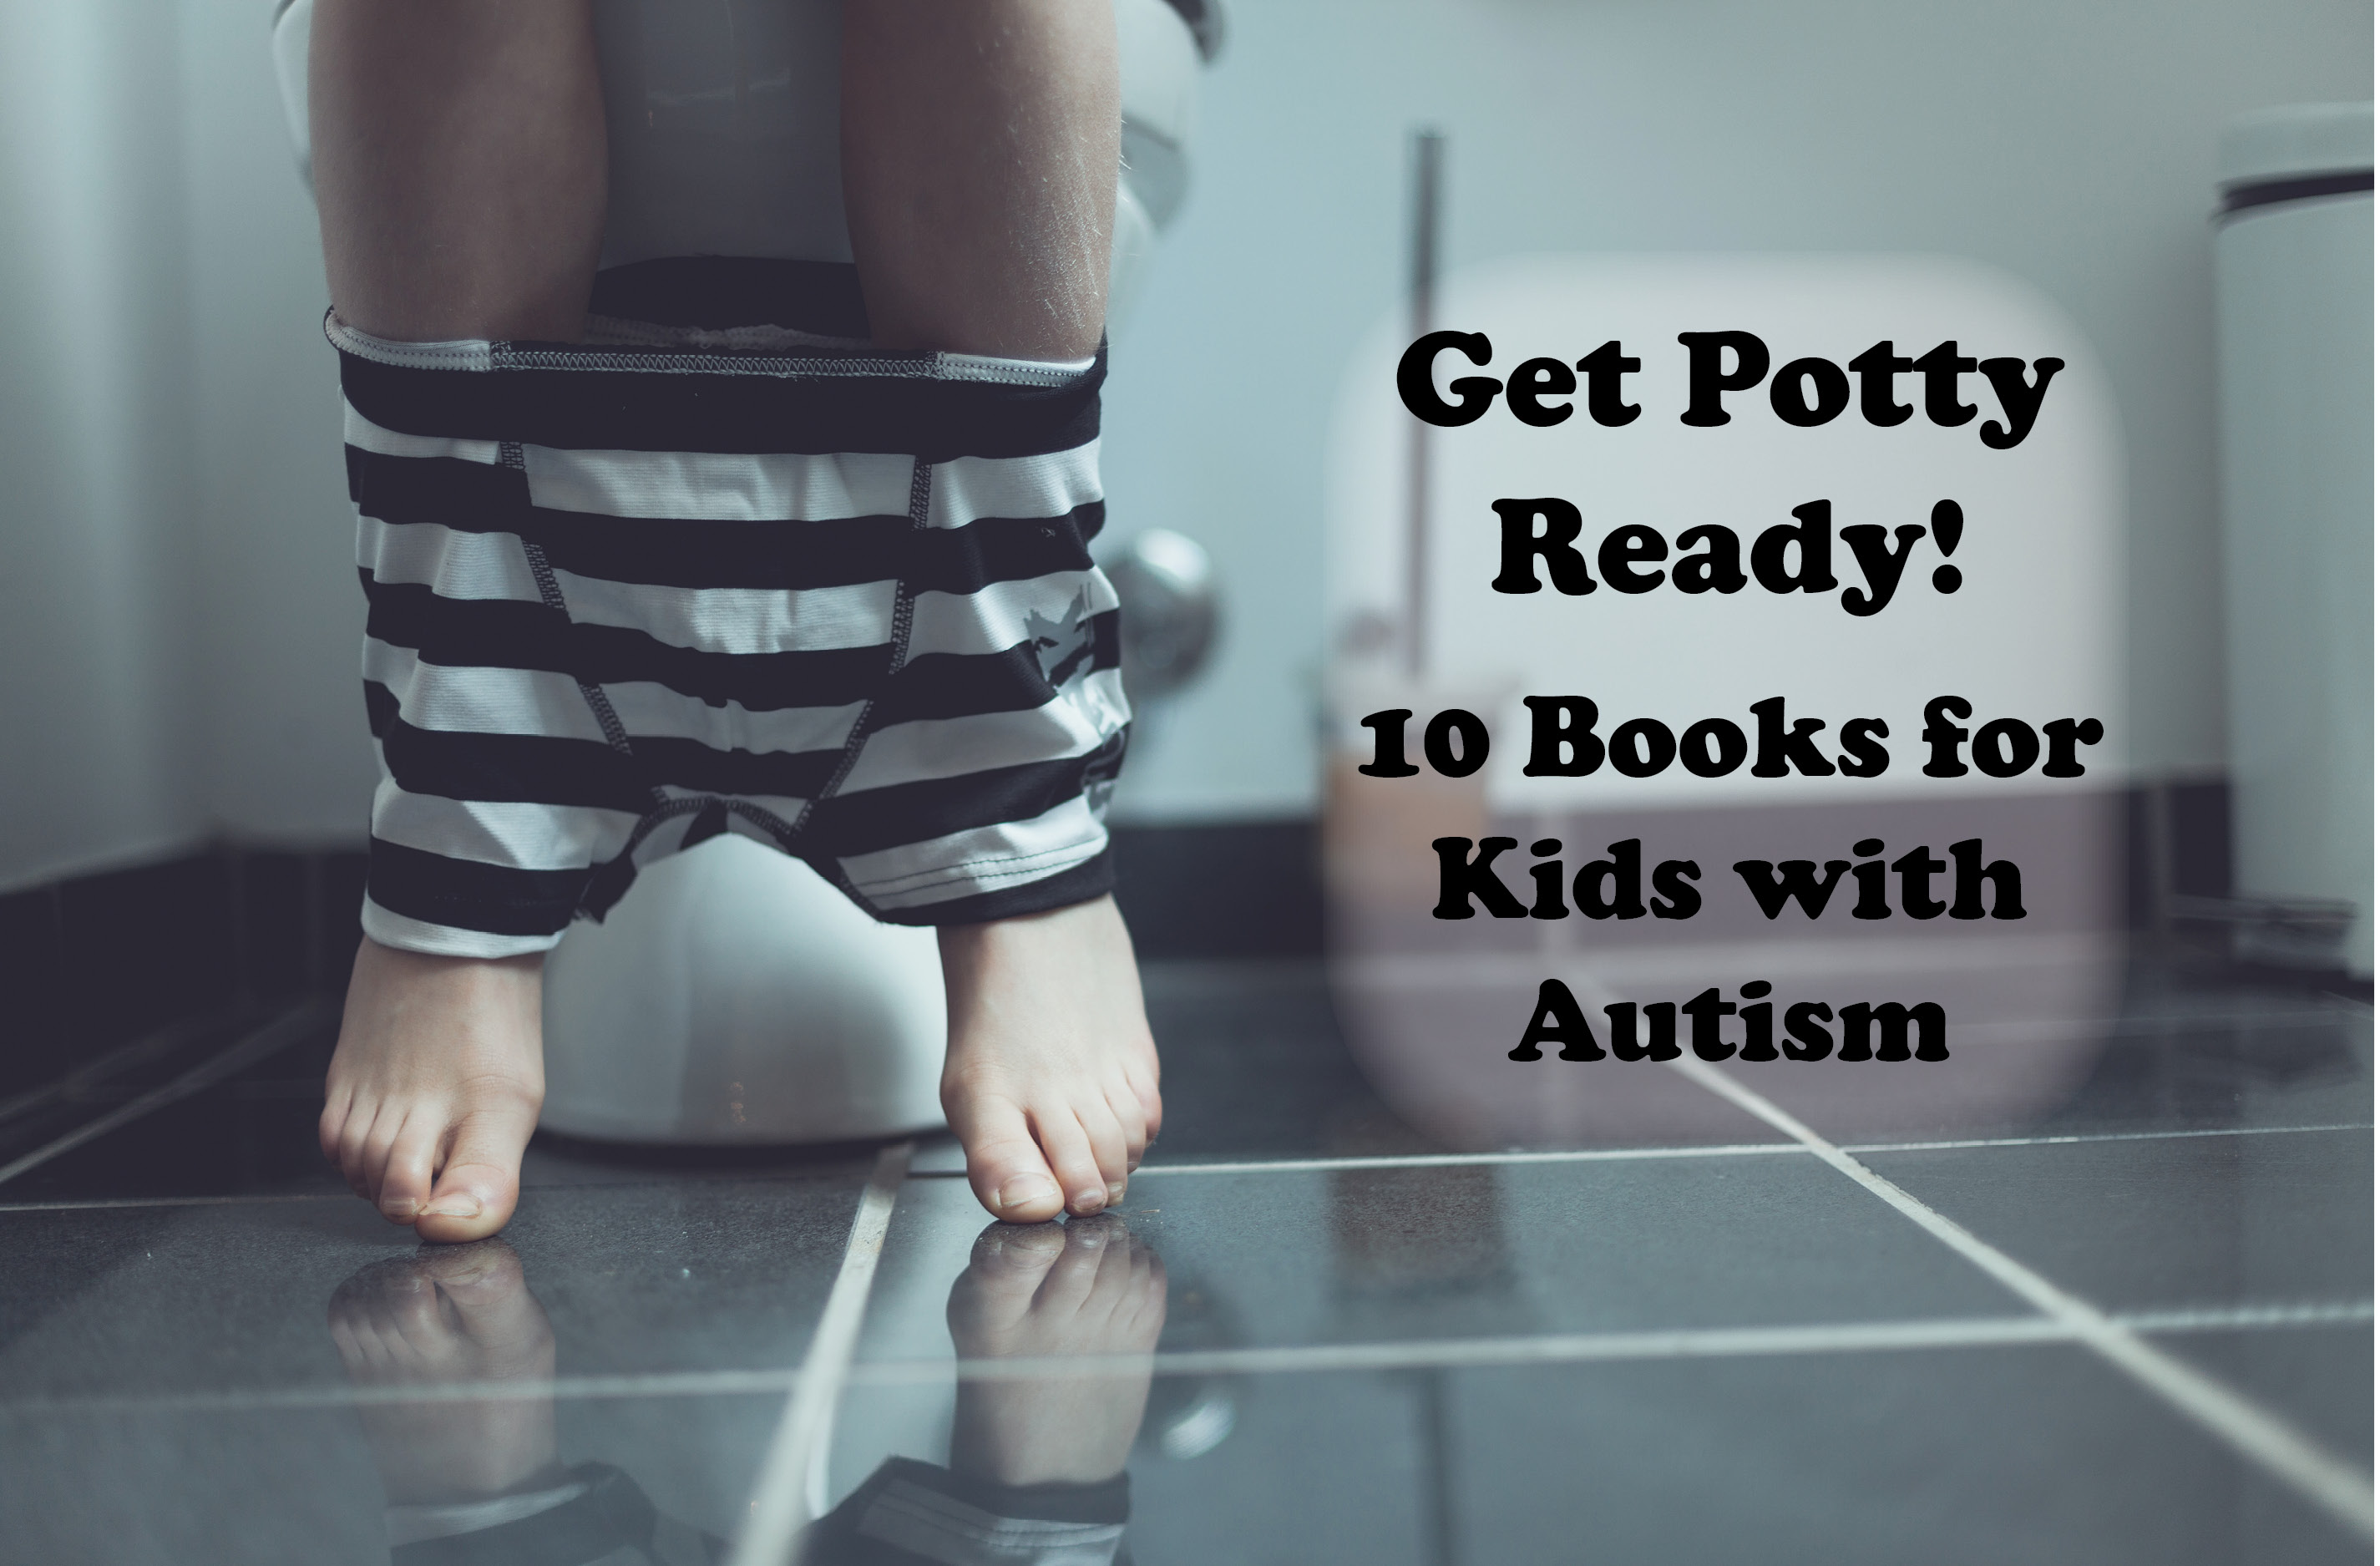 10 Picture Books for Potty Training Readiness